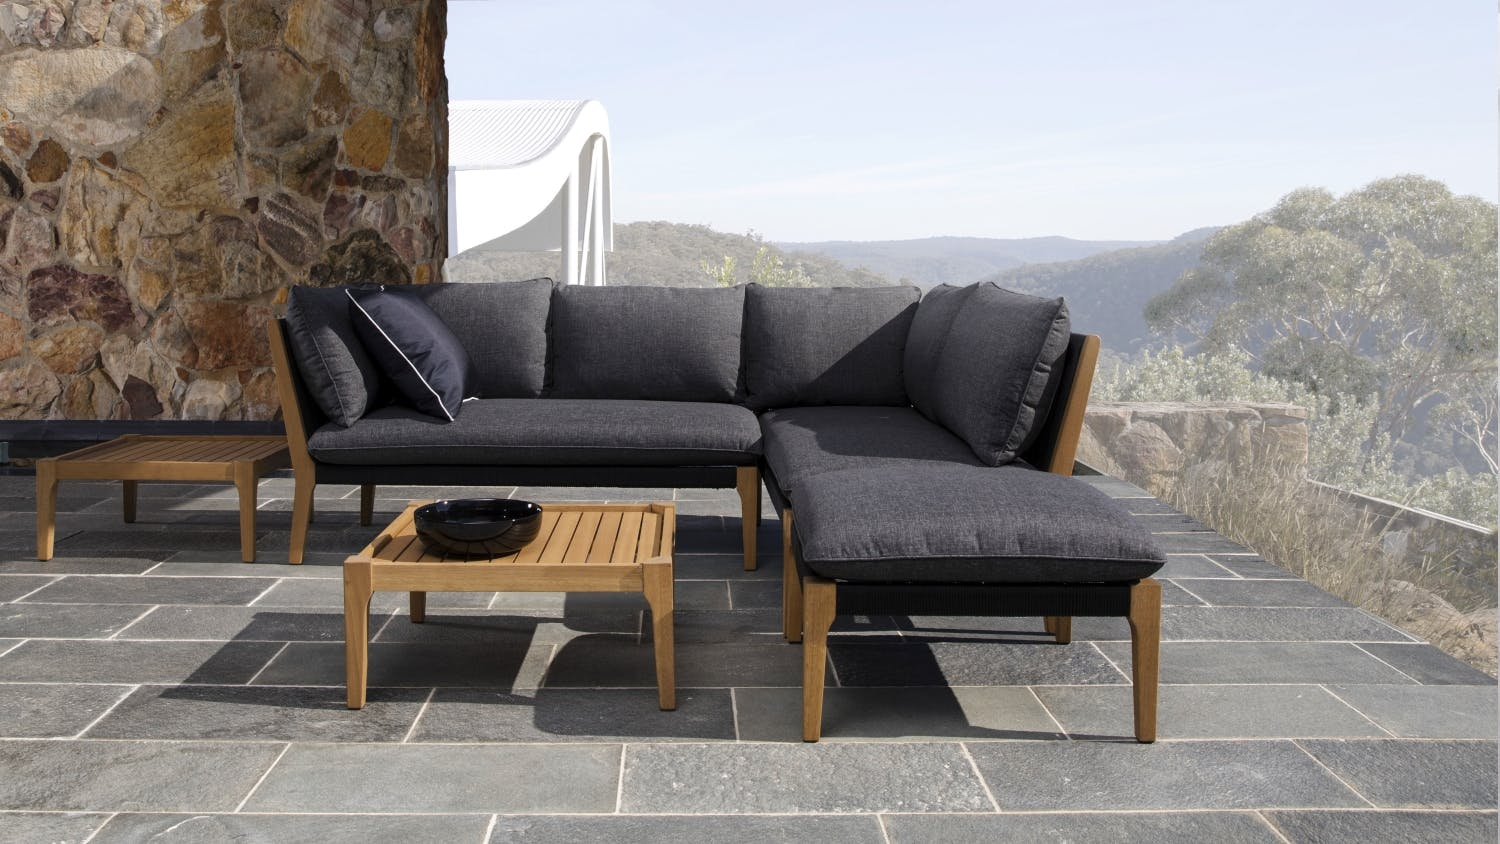 koa outdoor modular sofa domayne. Black Bedroom Furniture Sets. Home Design Ideas